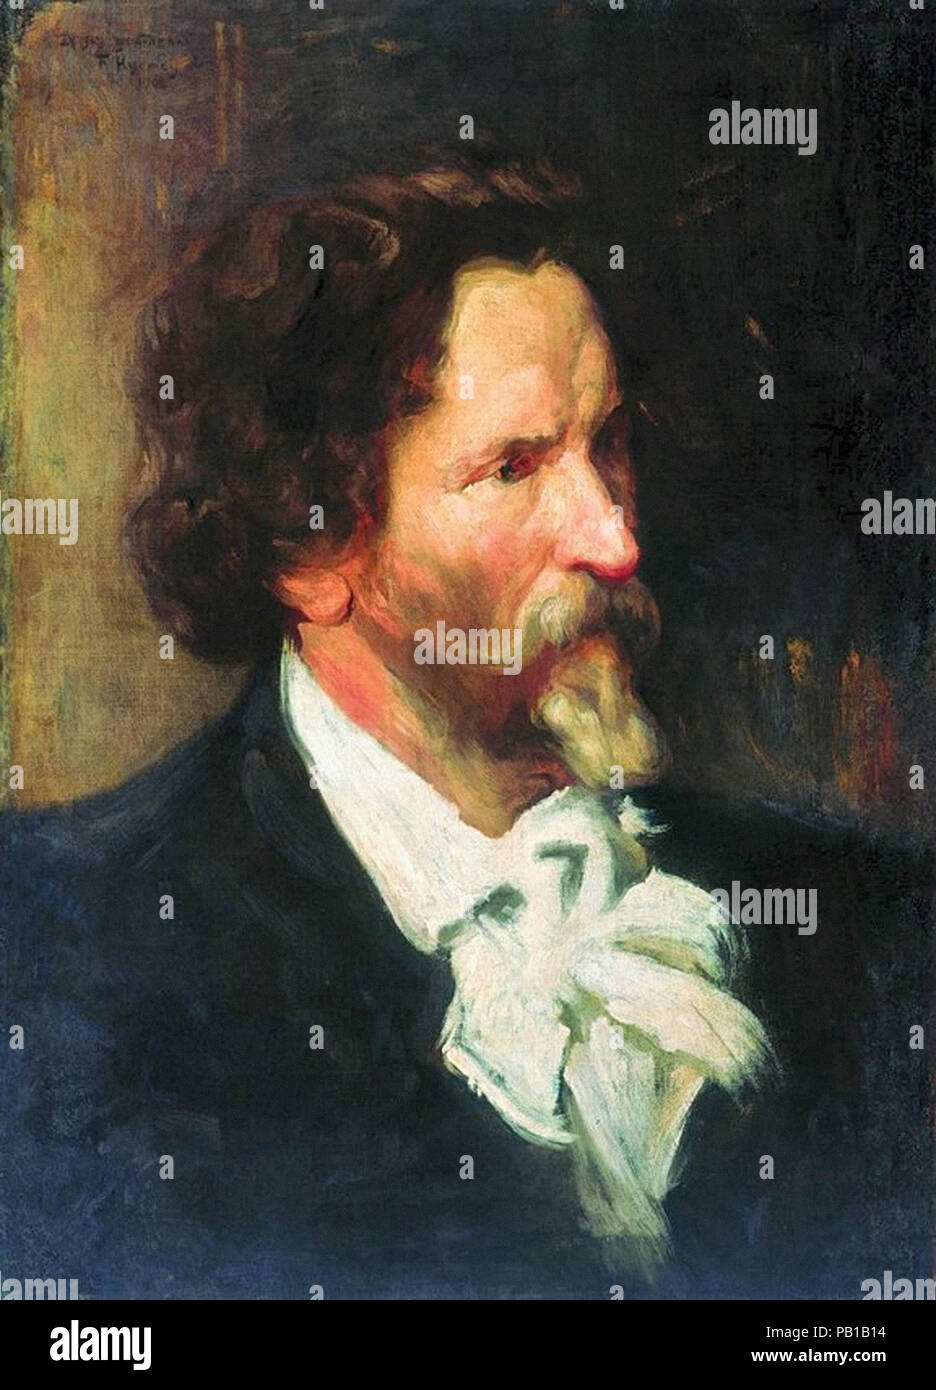 Ilya Repin: historical paintings, portraits, ceremonial canvases 81